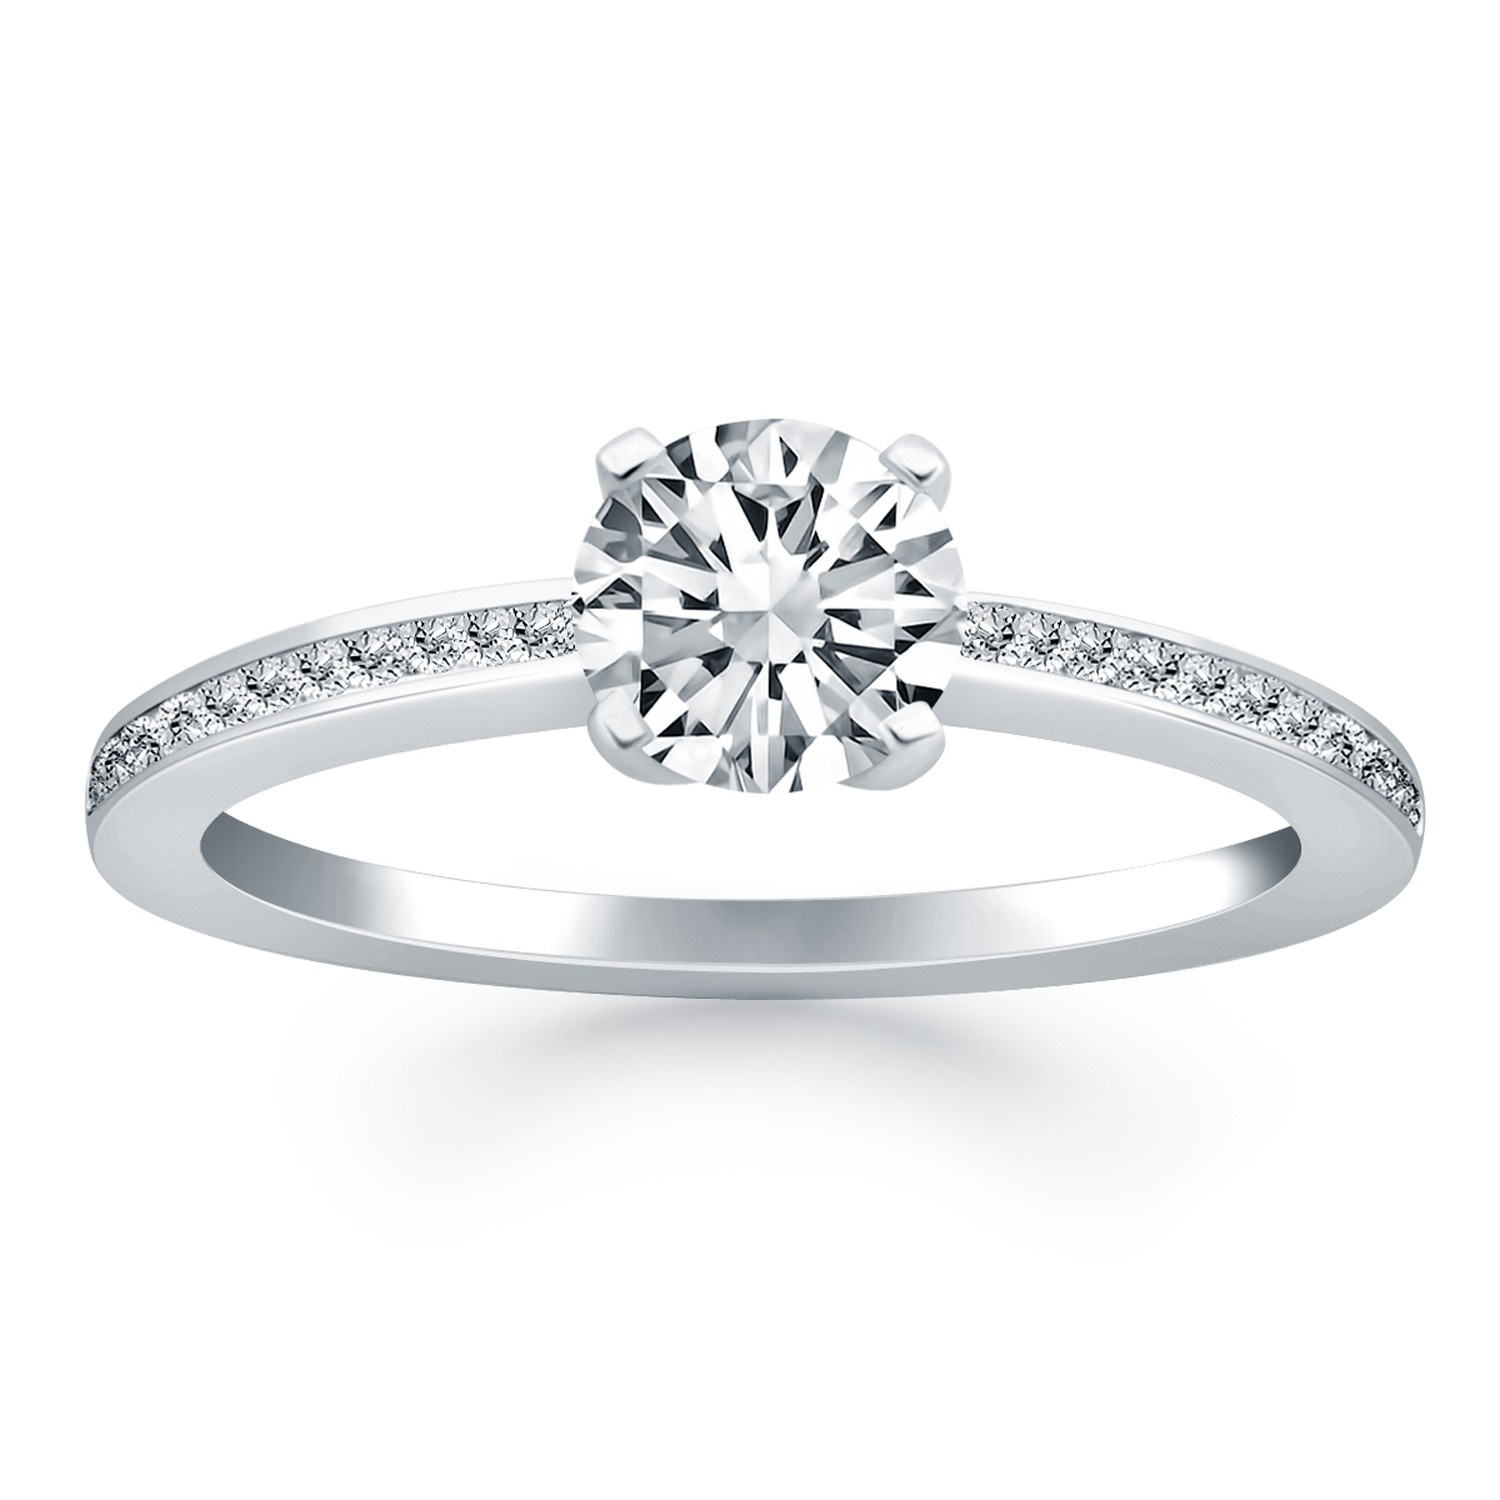 Pavé Bands: Classic Pave Diamond Band Engagement Ring Mounting In 14K